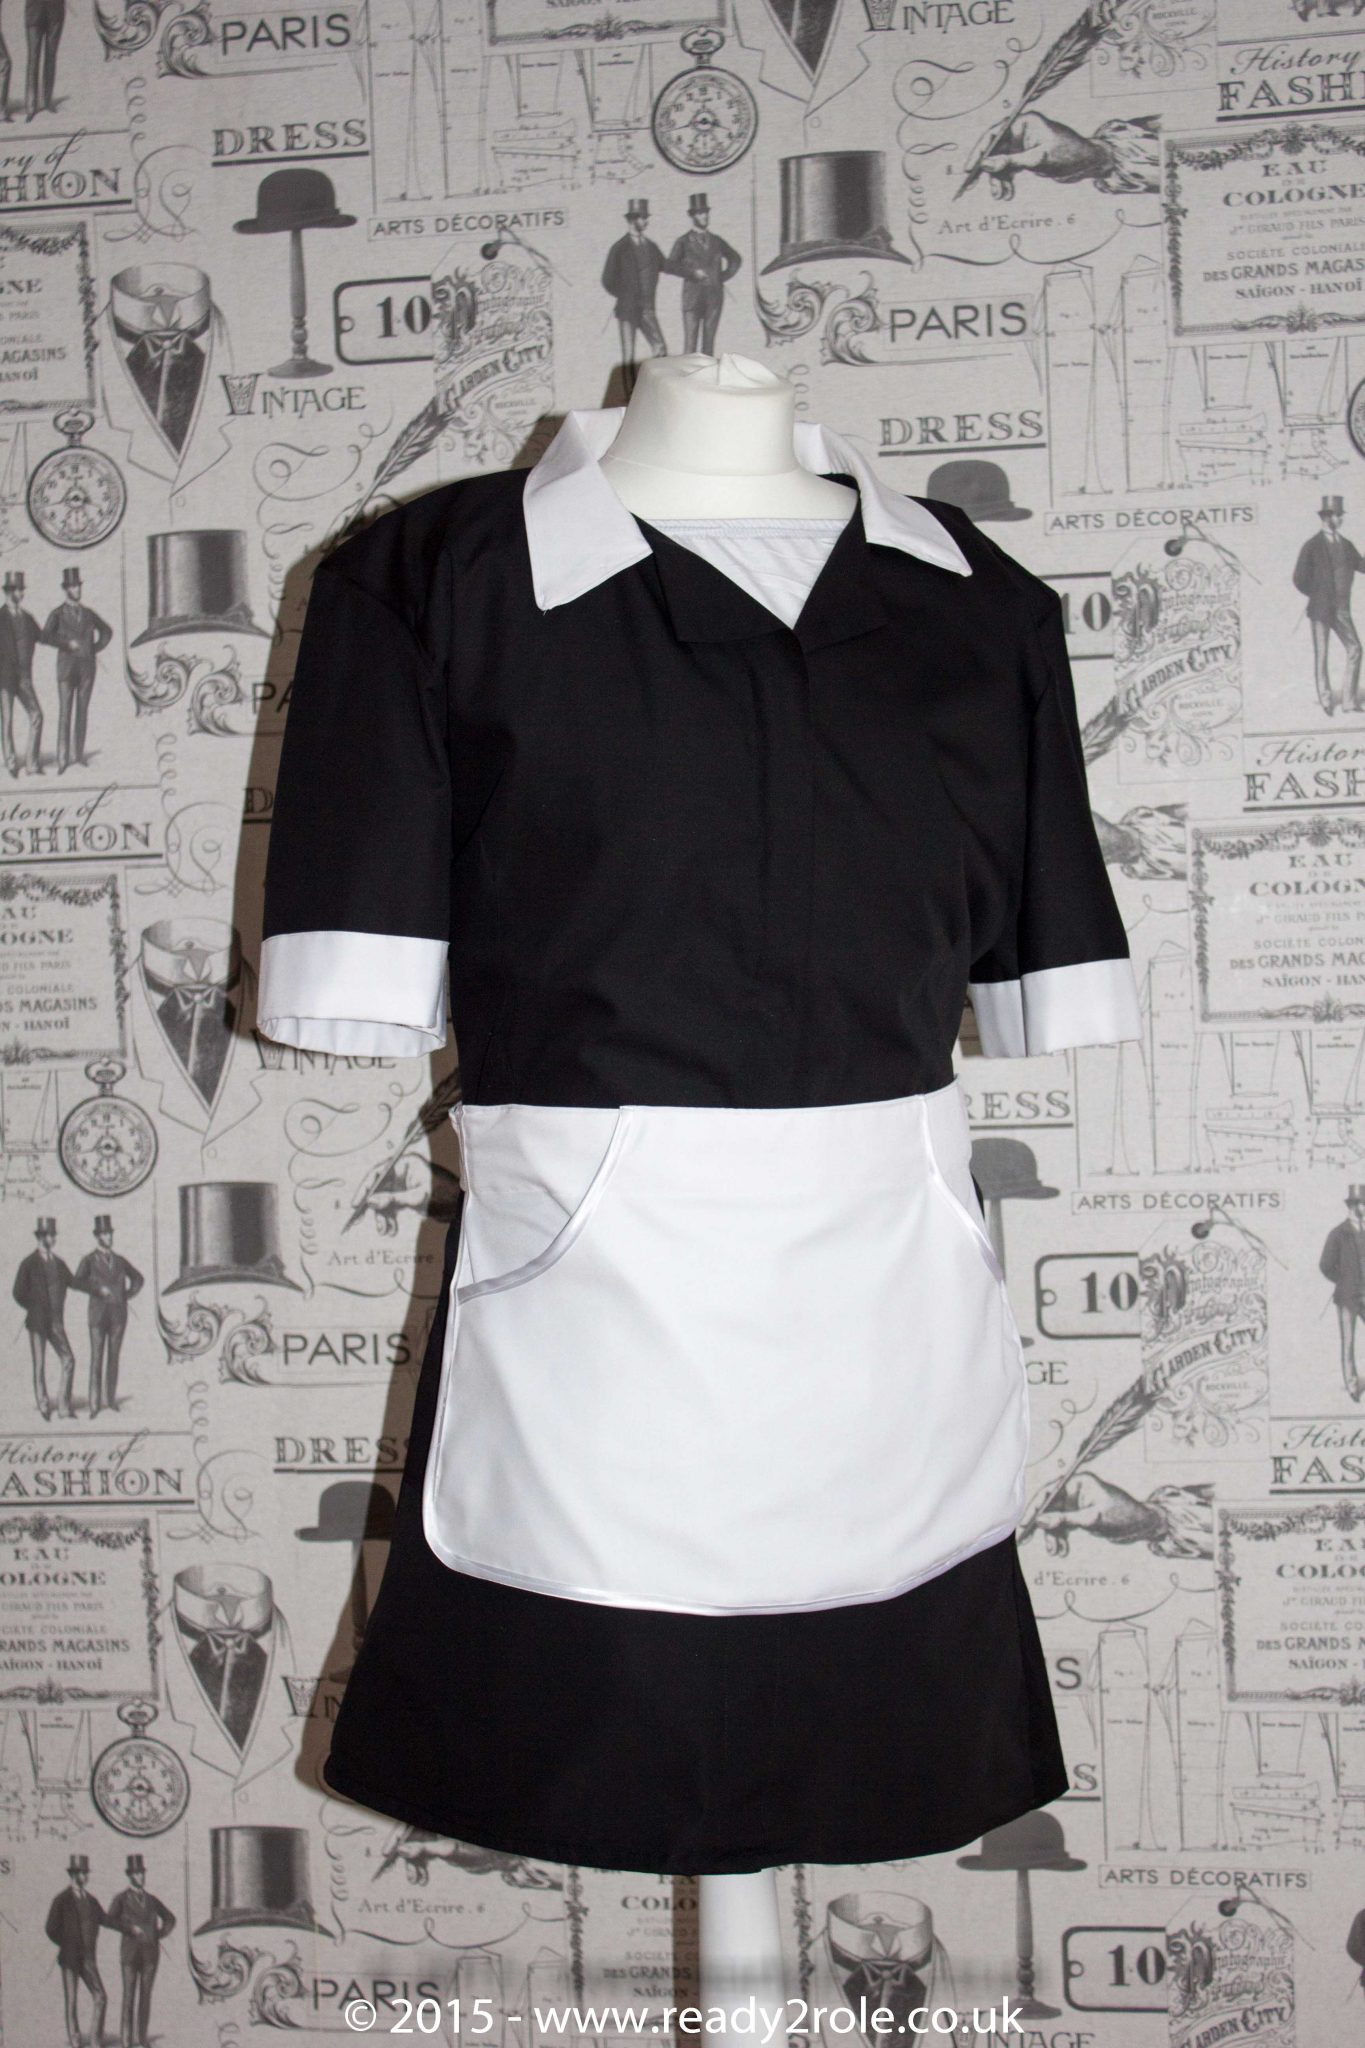 Maid For You – Sissy Maid Dress in Cotton